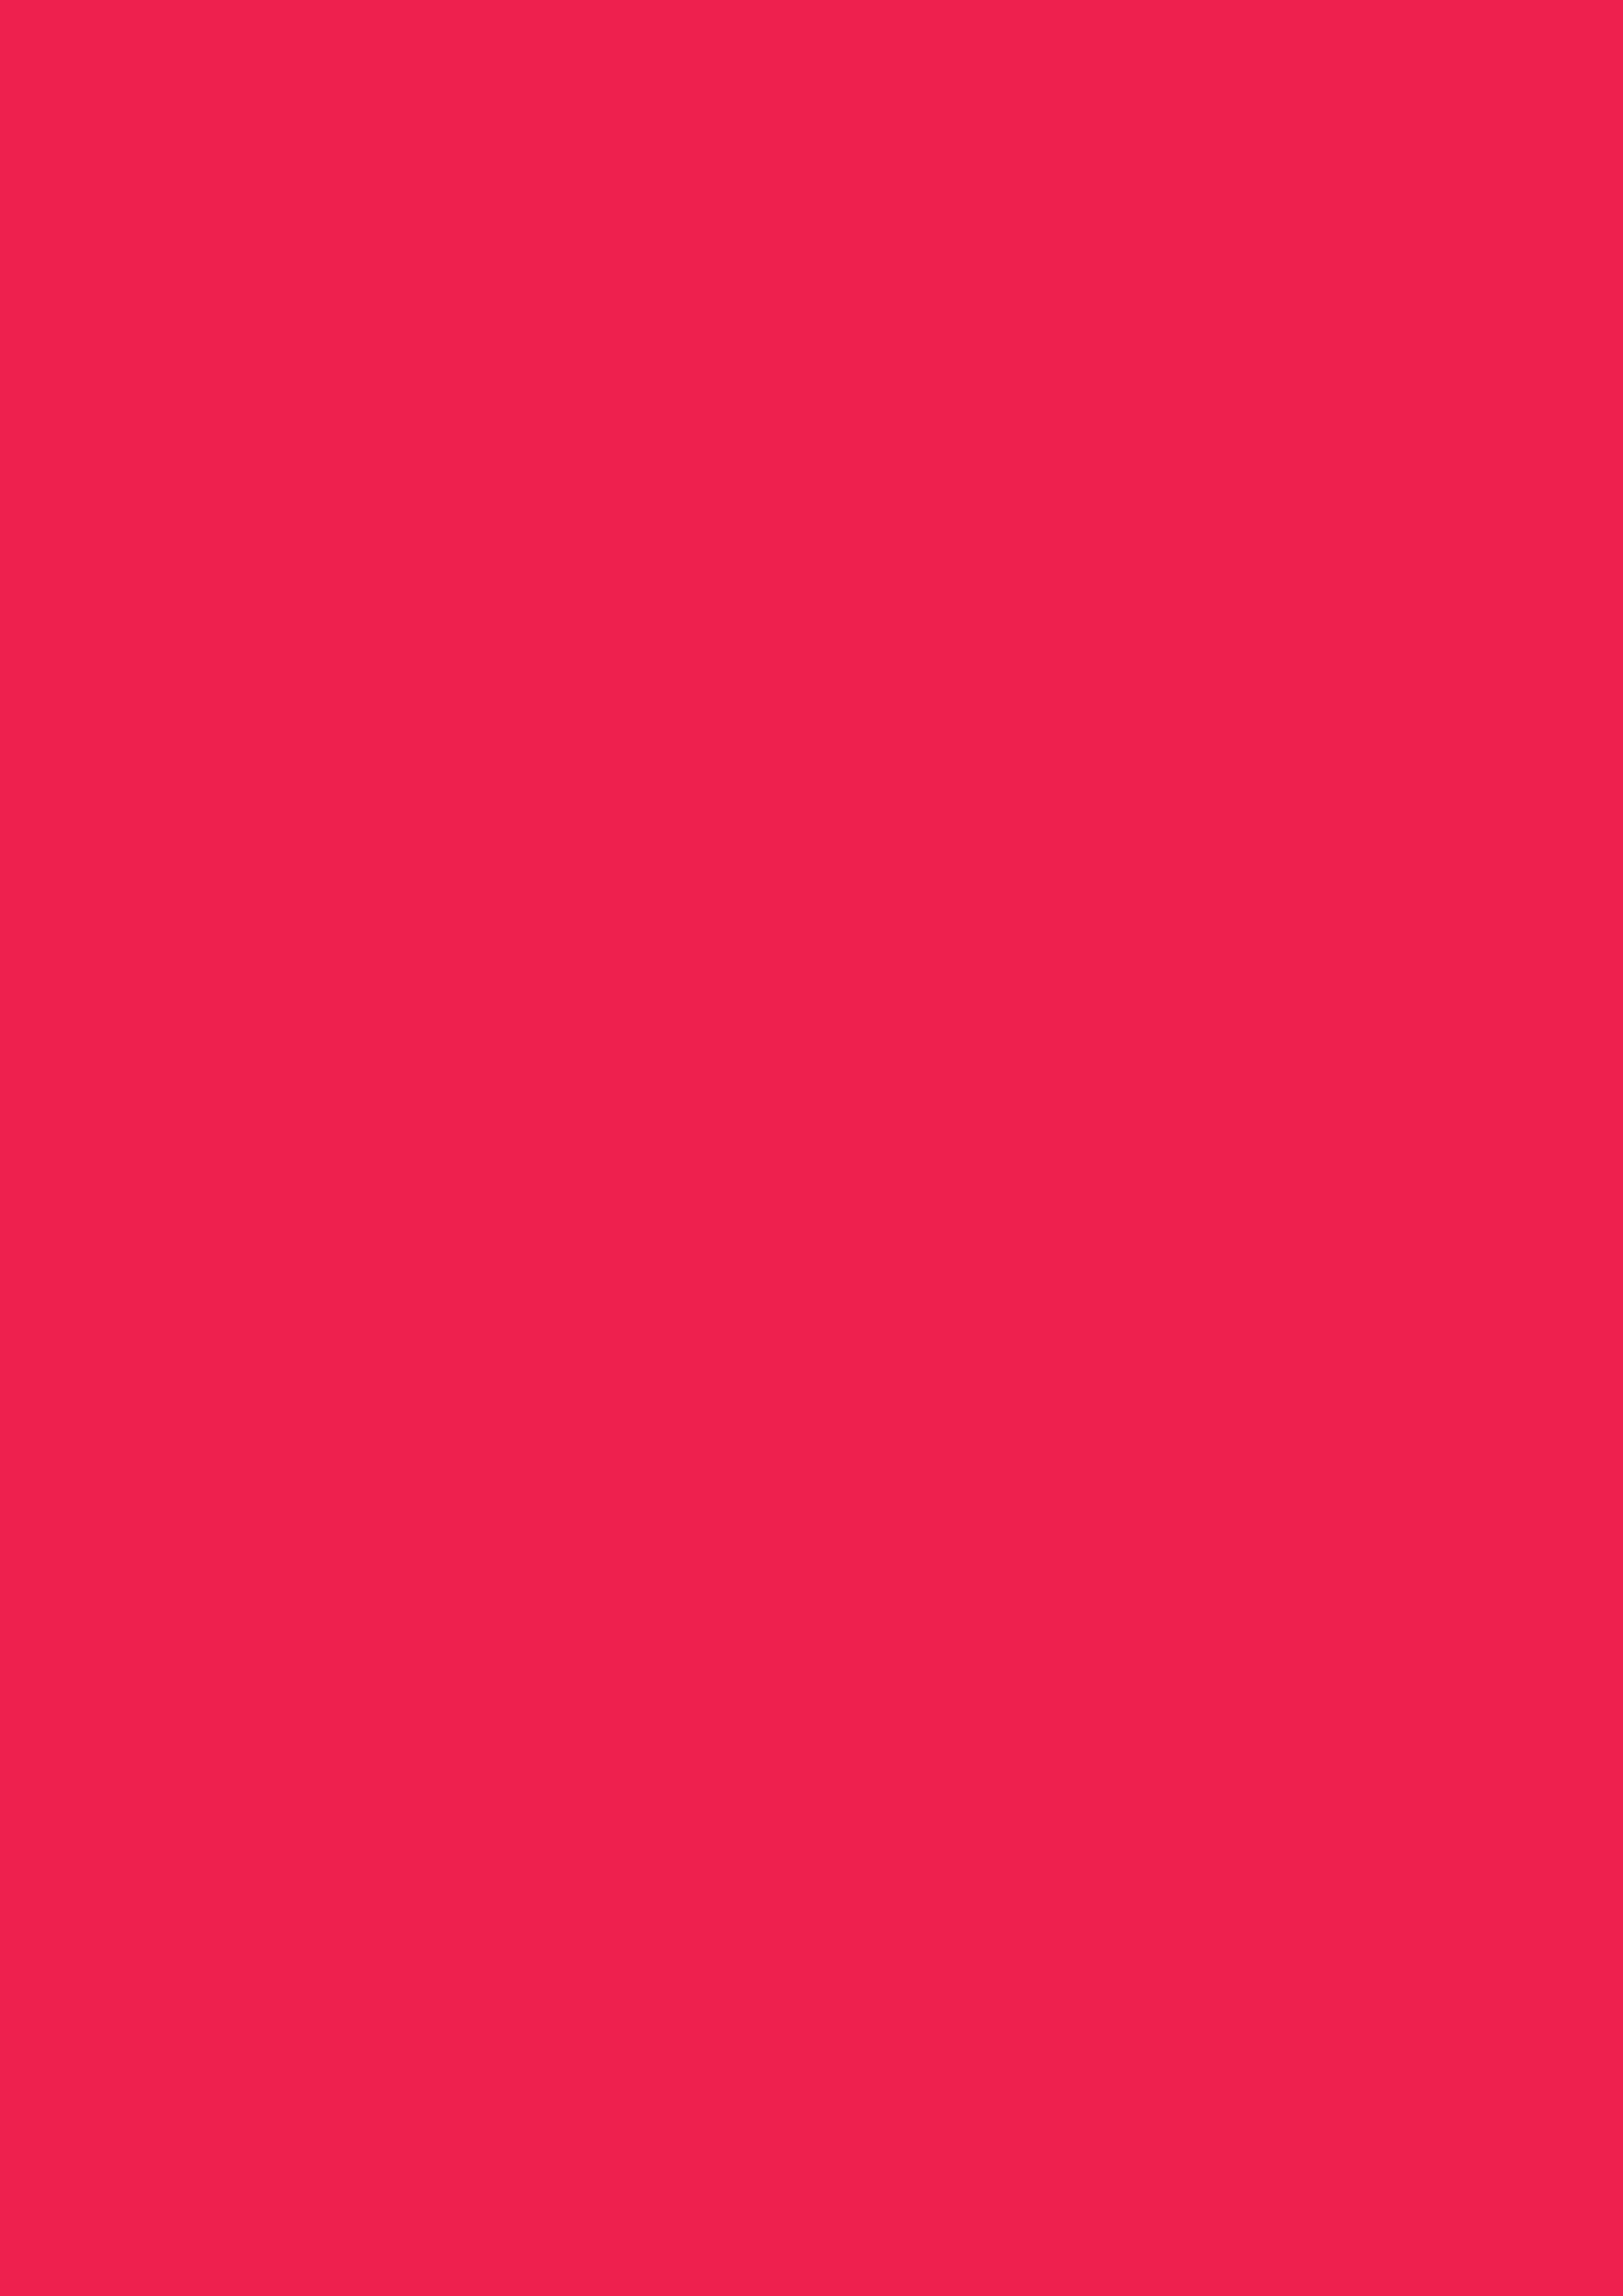 2480x3508 Red Crayola Solid Color Background